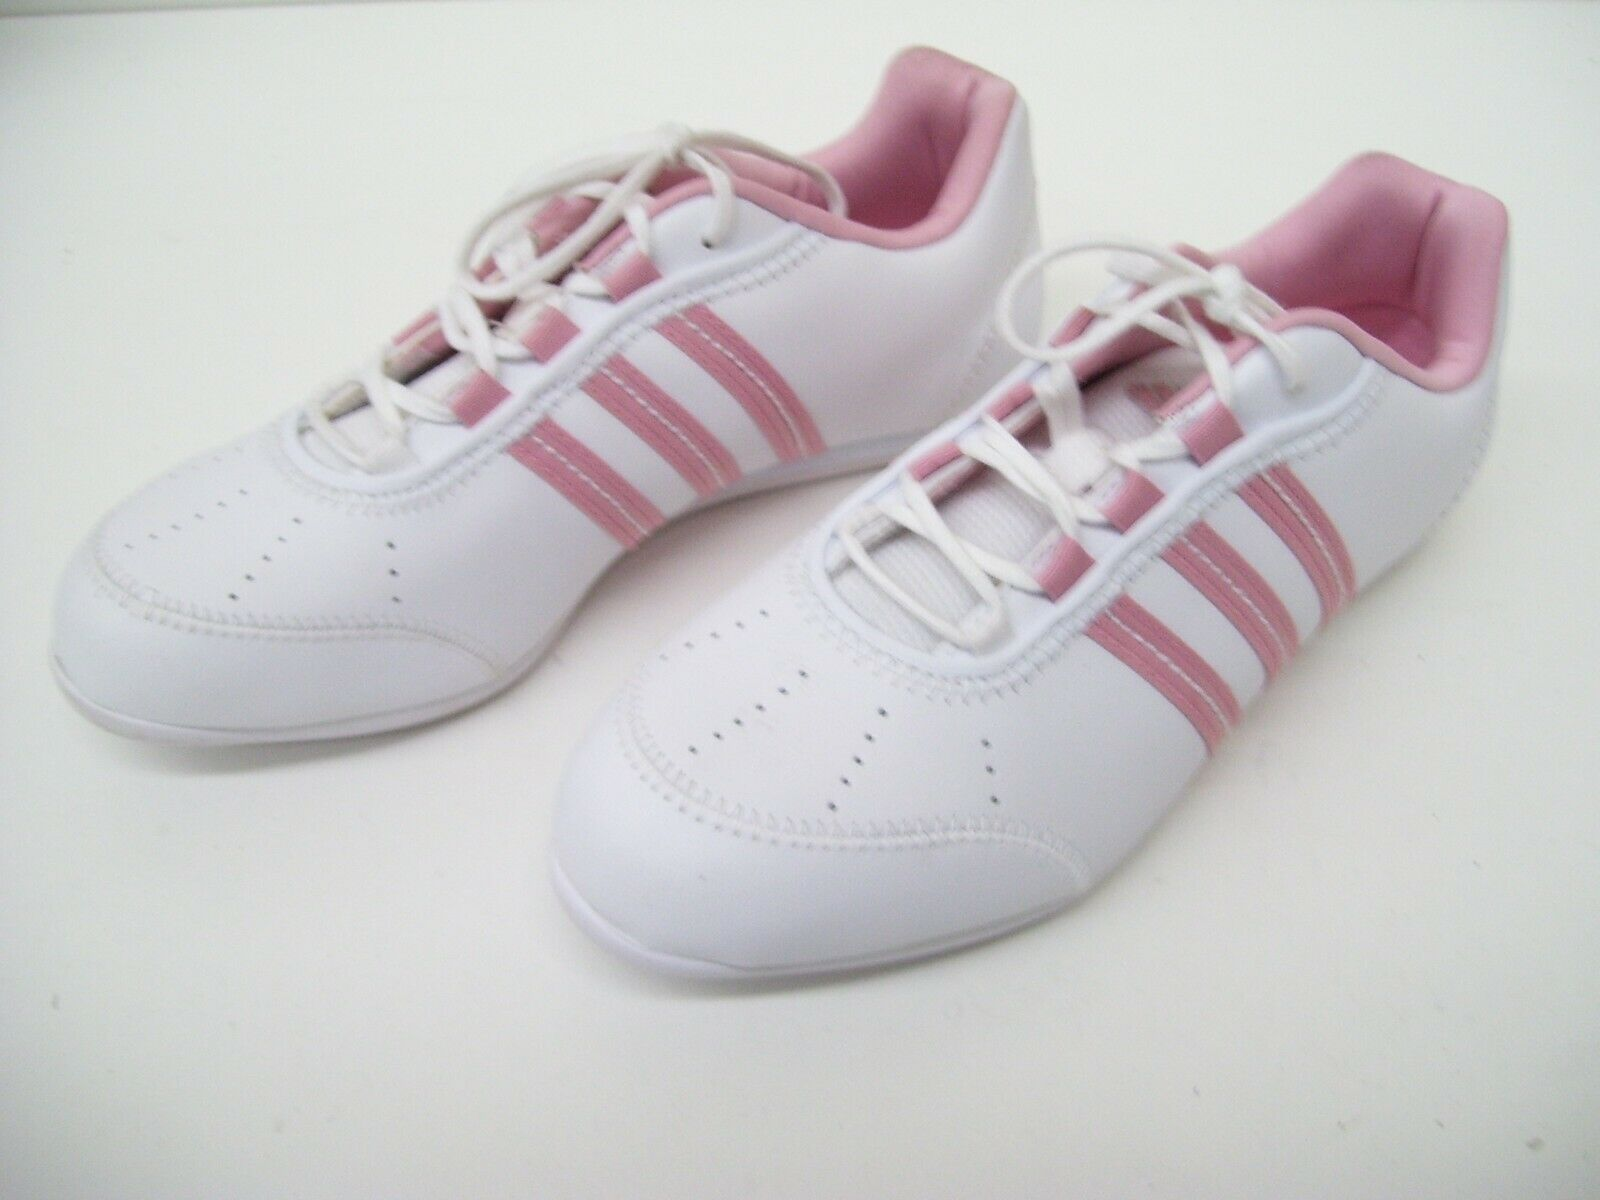 ADIDAS femmes TRAINERS RUNNING TRAINING EXERCISE chaussures RUNNERS Taille 6 YATRA 50